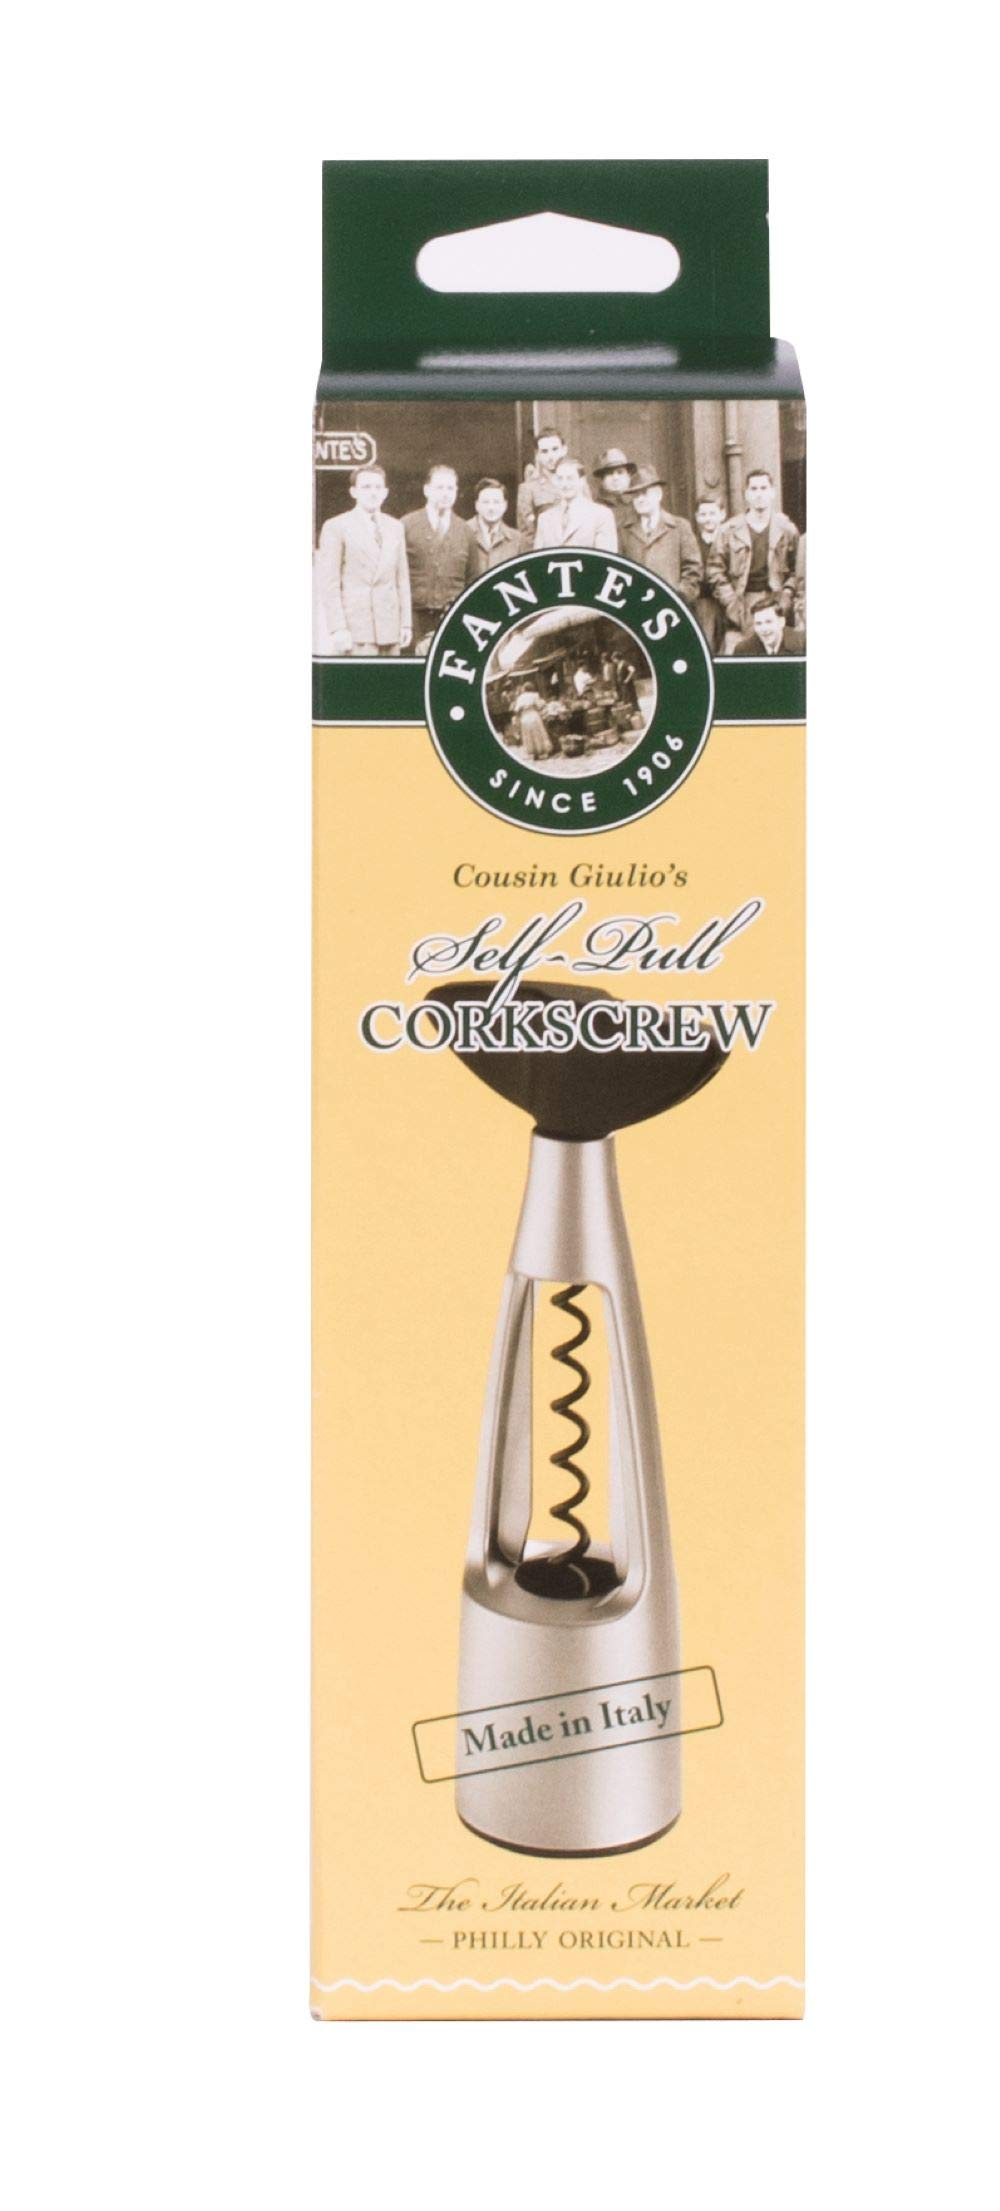 Fantes Self-Pull Corkscrew, Made in Italy, The